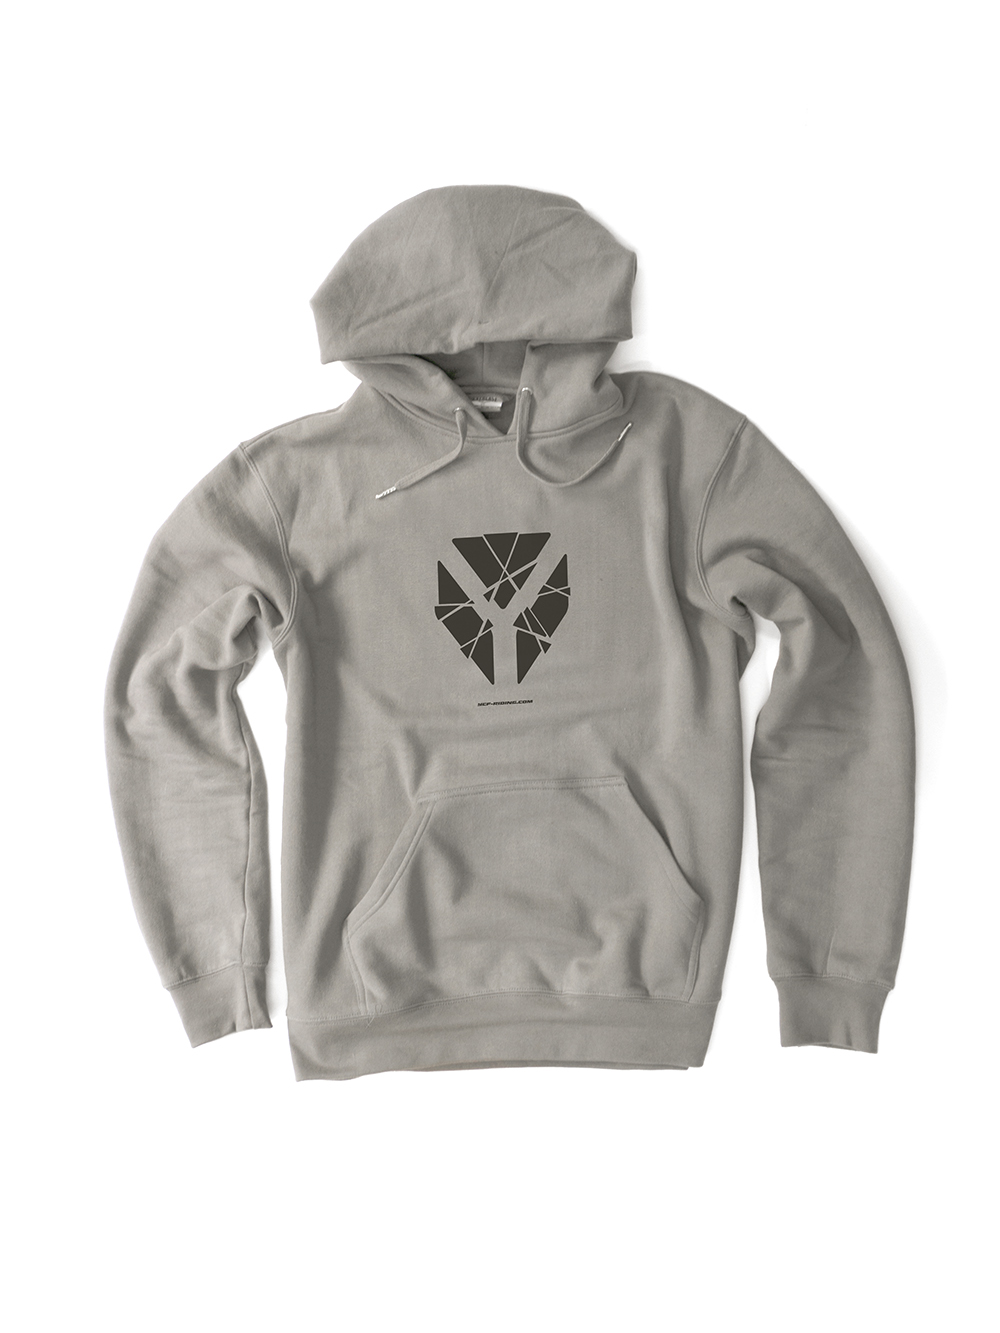 SWEAT SHIRT GREY (MEDIUM)